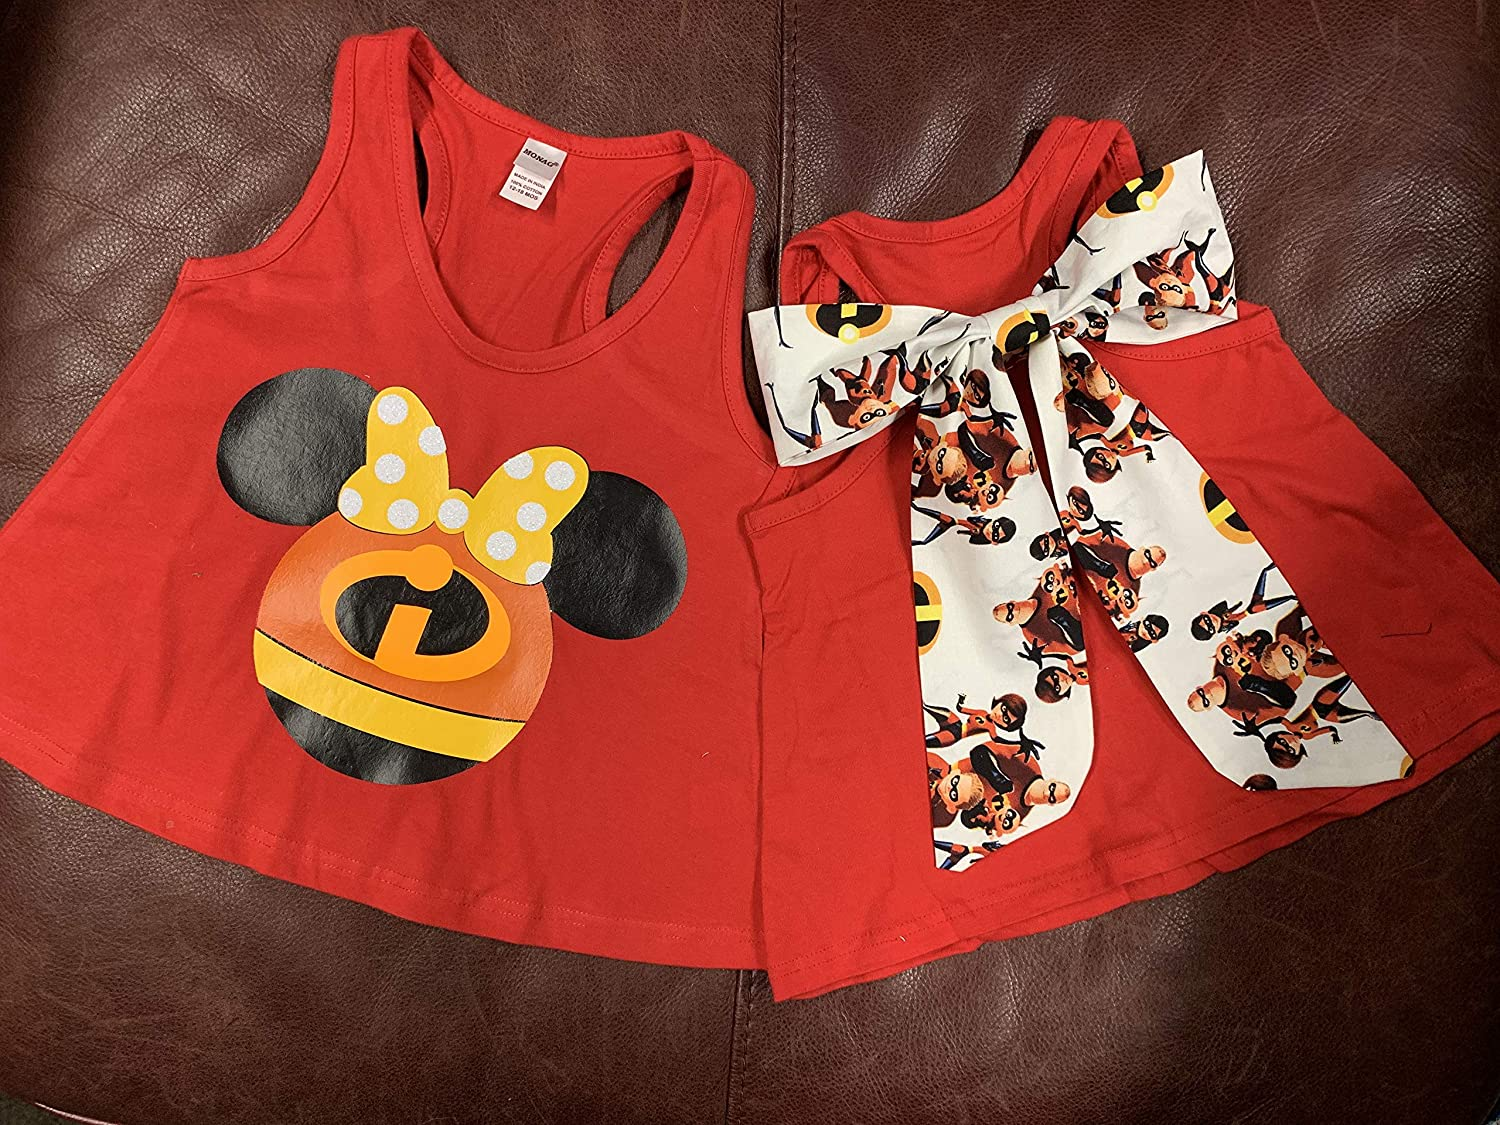 Handmade Disney Shirt Incredibles Family with Detachable Incredibles Bow on Back of shirts